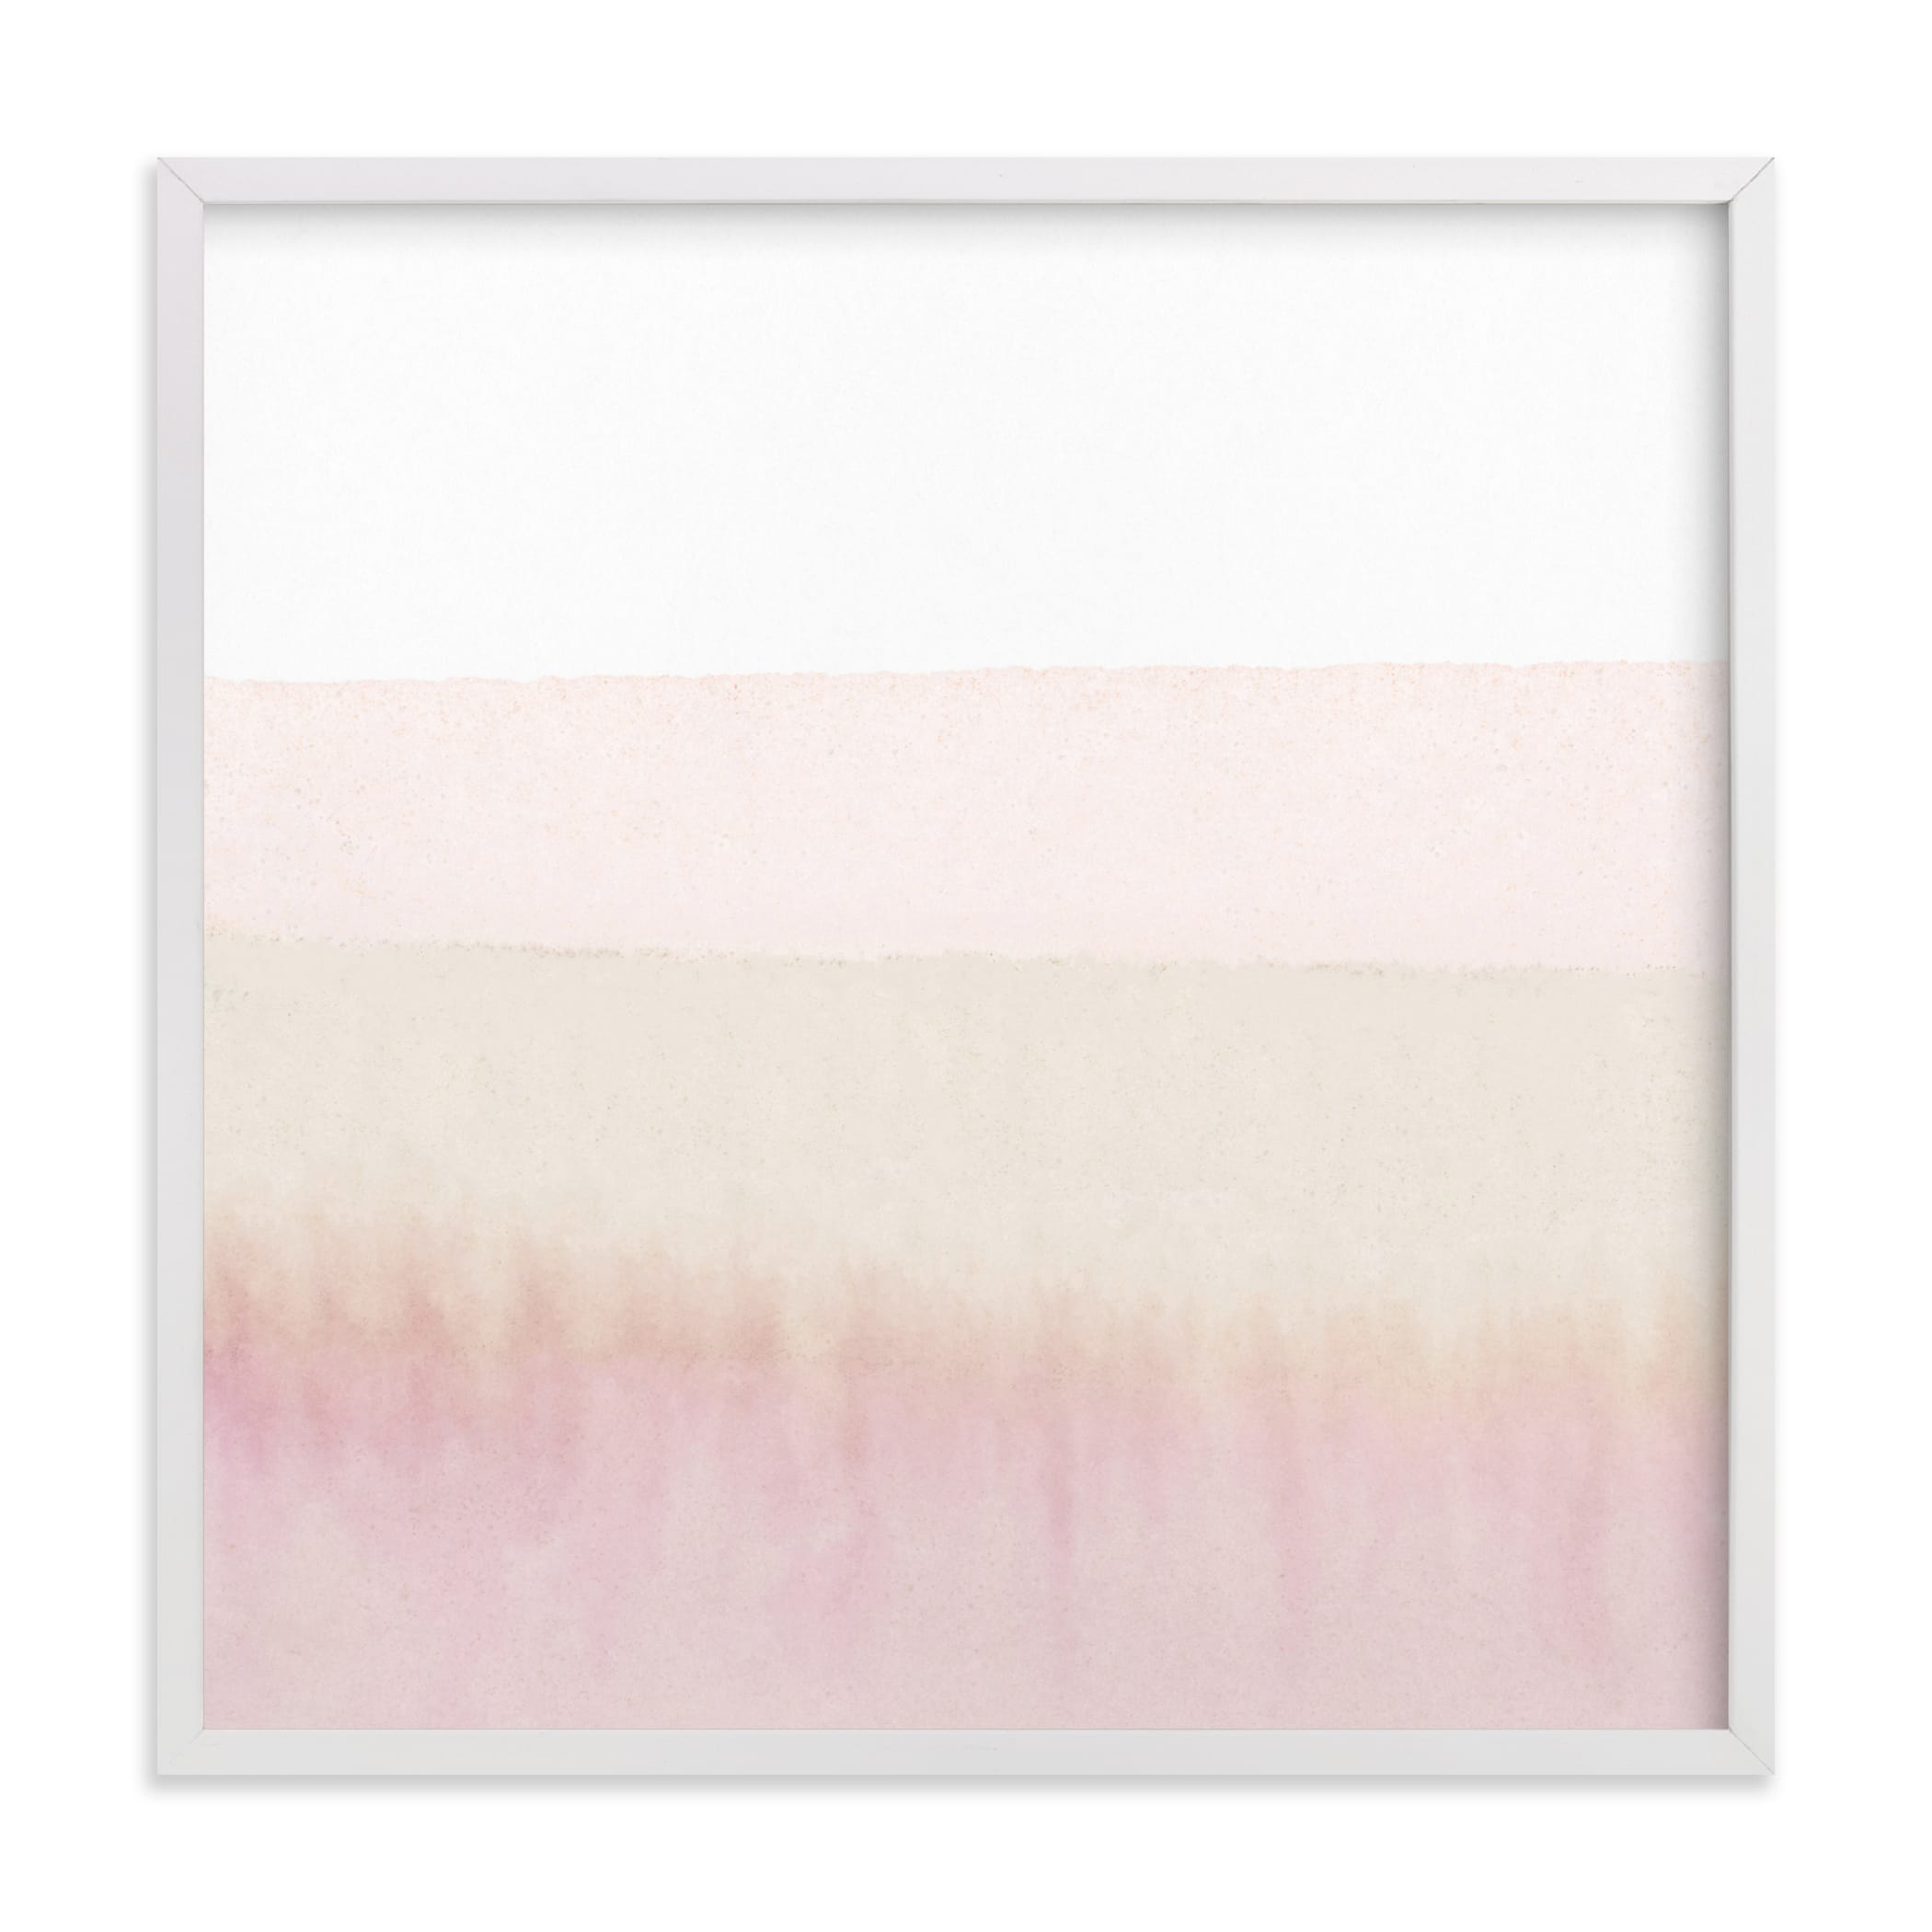 This is a white art by Sadie Holden called Sunup.